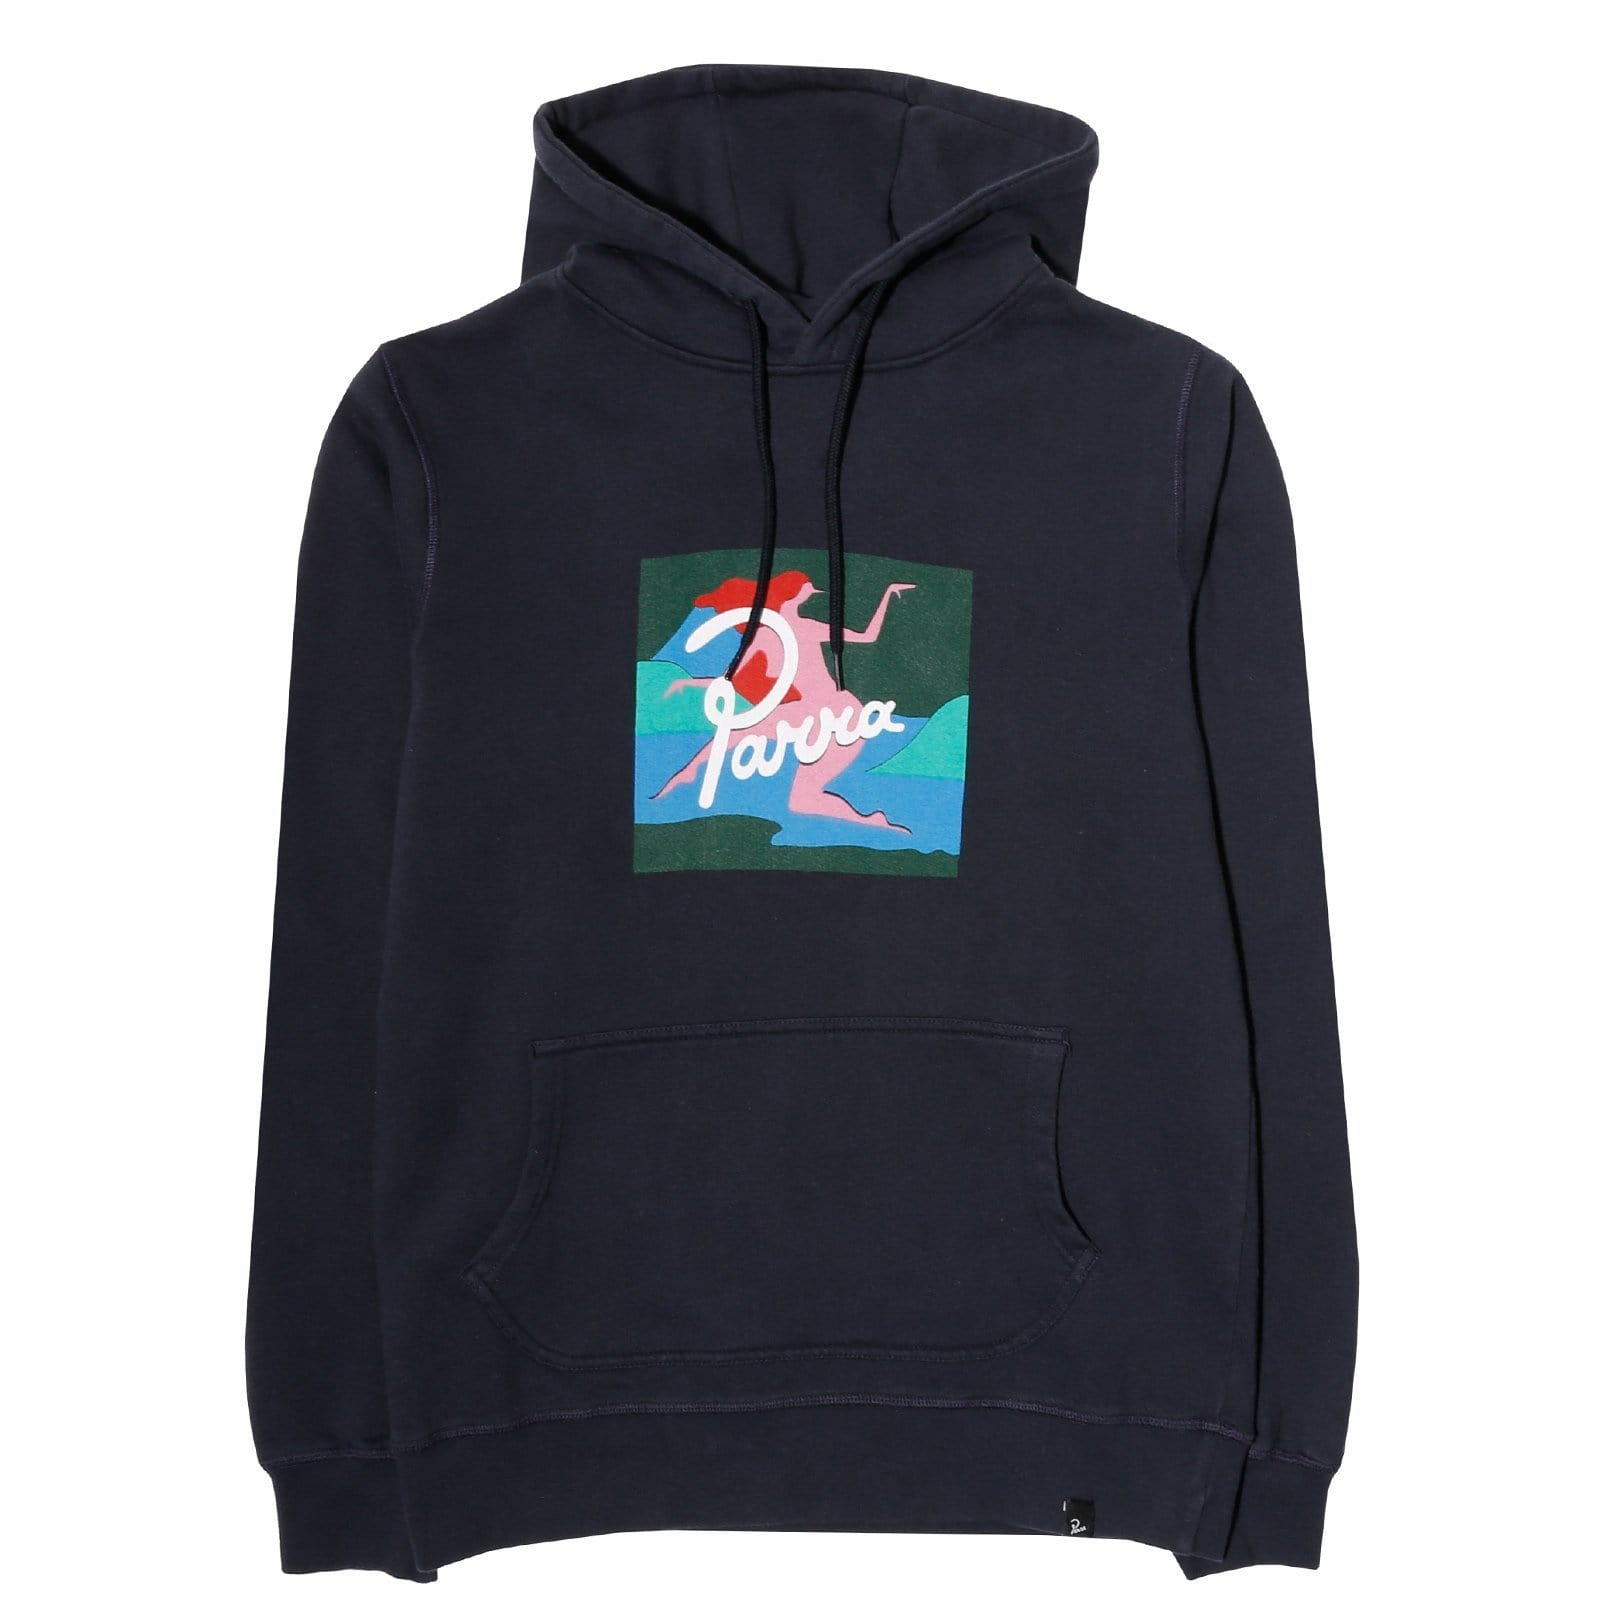 35cb8ebd2d6 https://bdgastore.com/products/bacchus-sweatshirt 2019-07-29T06:14 ...